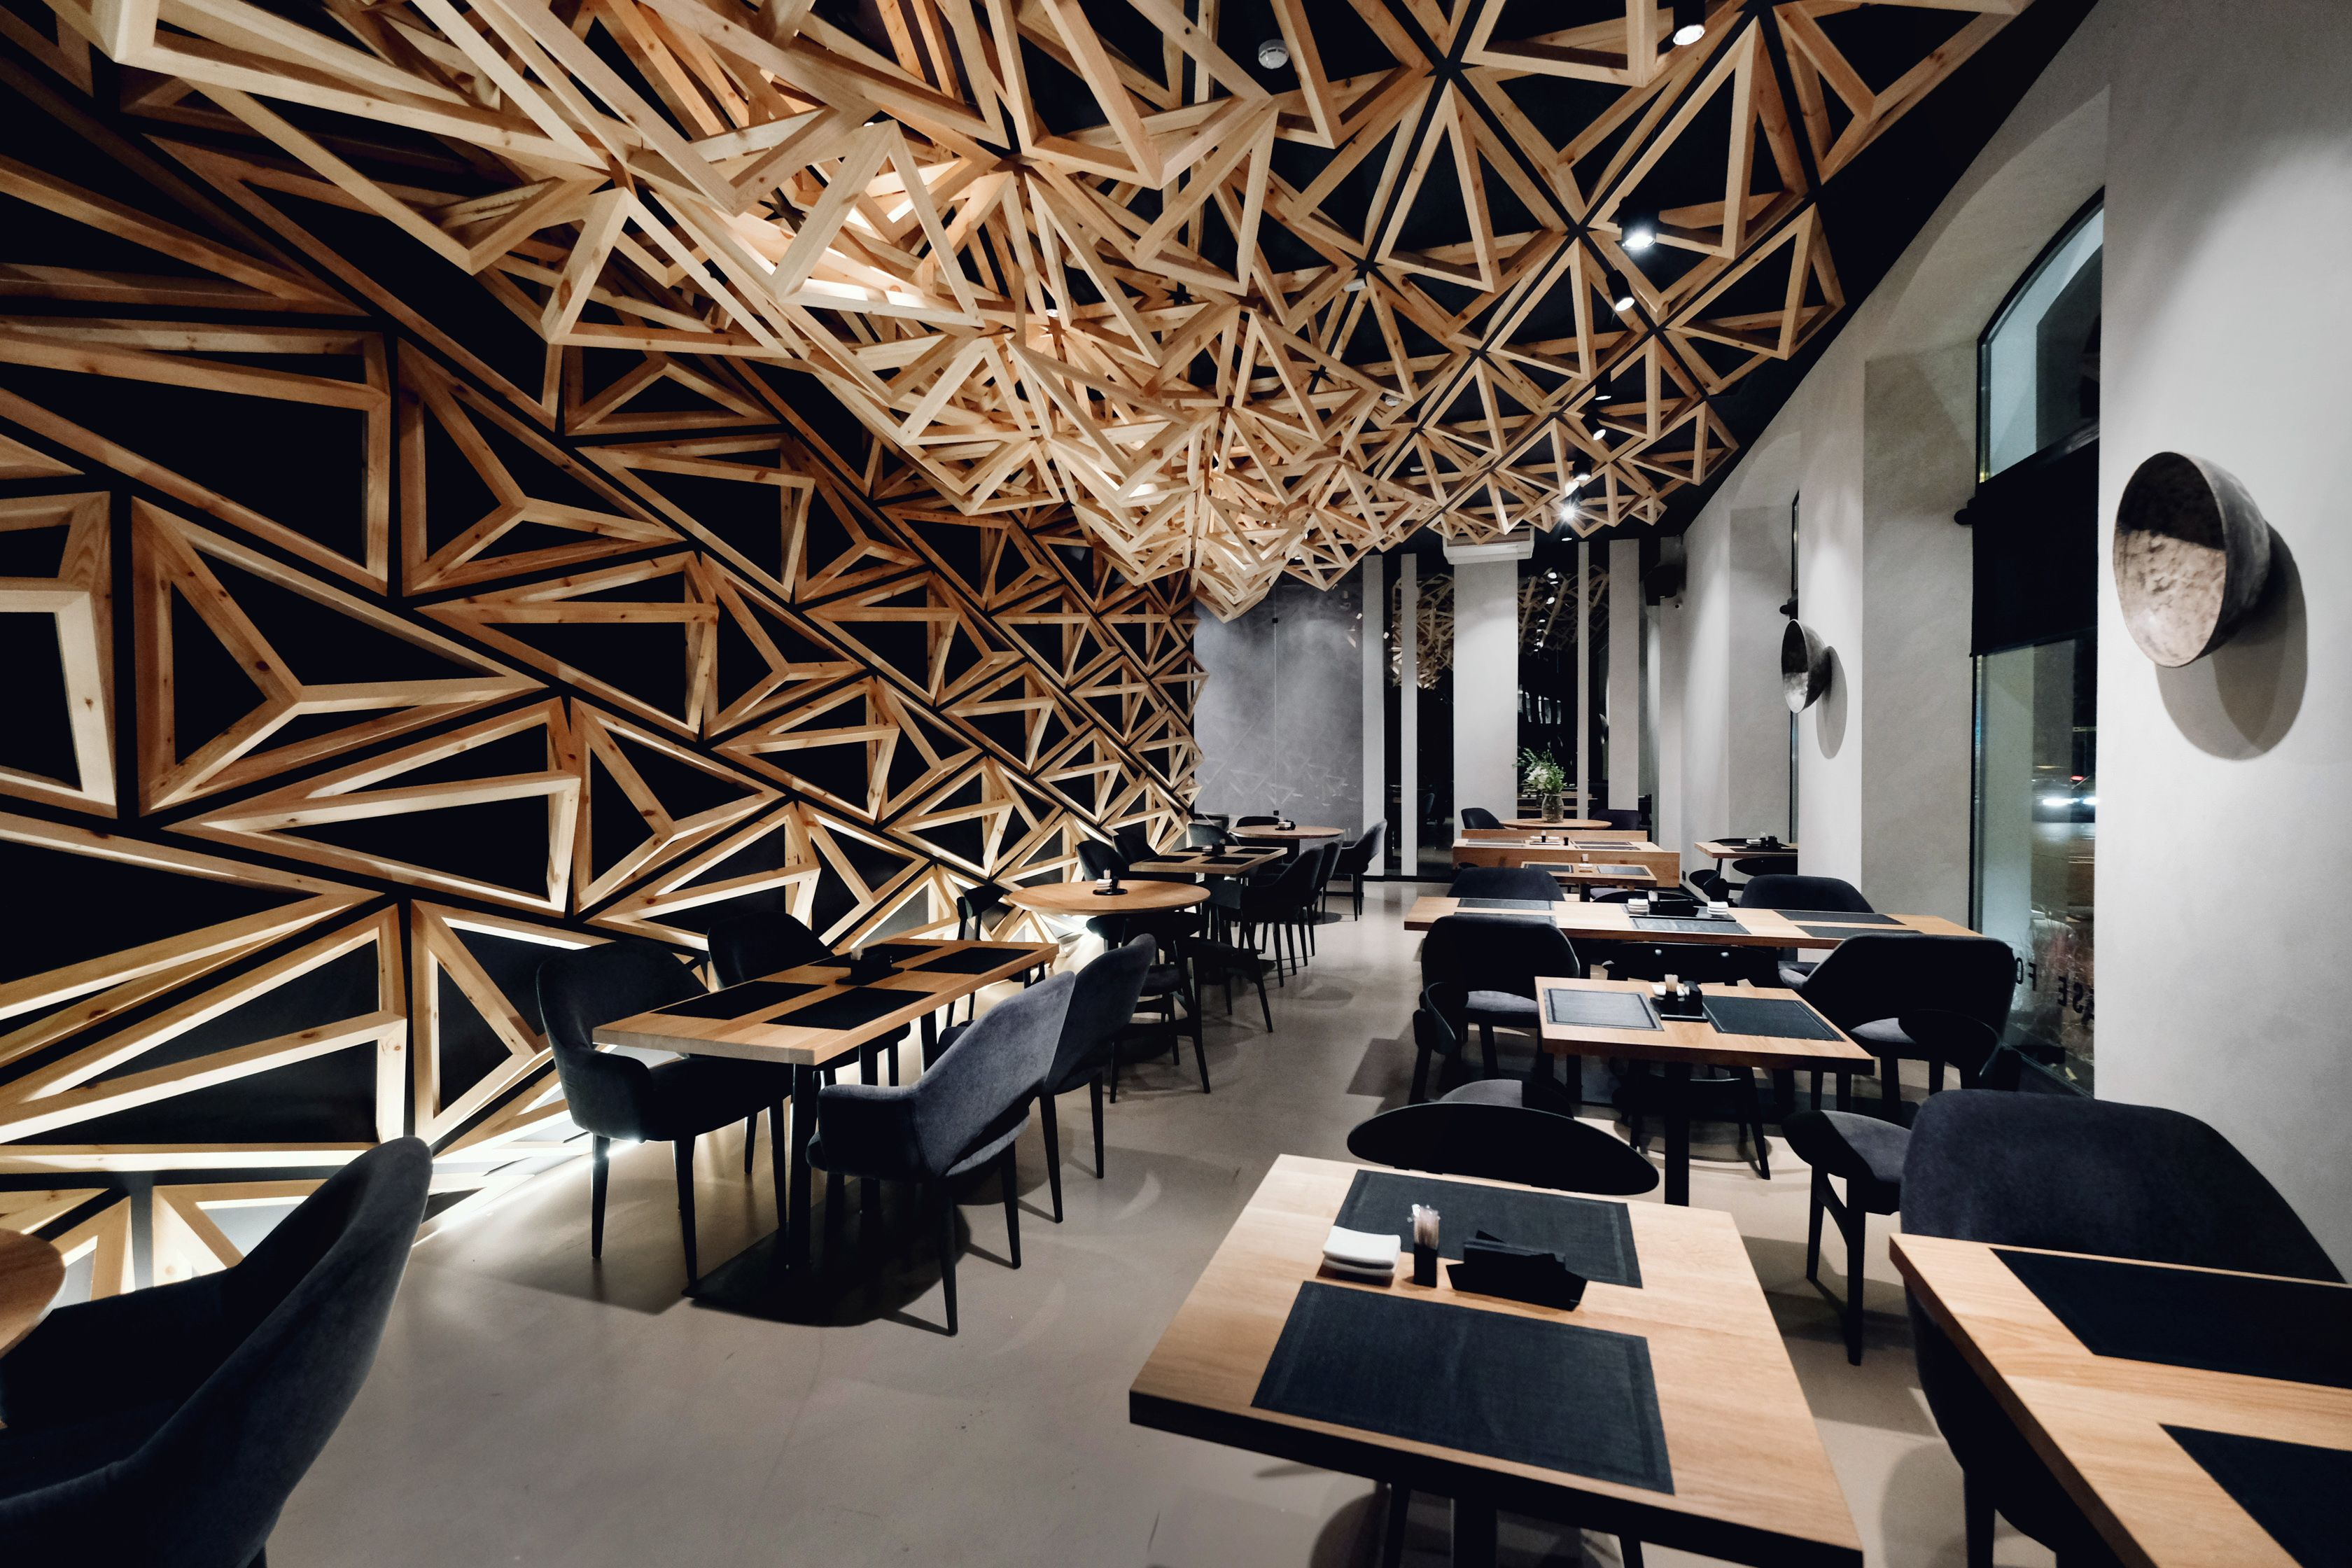 kido sushi bar, located in saint-petersburg, russia | architecture